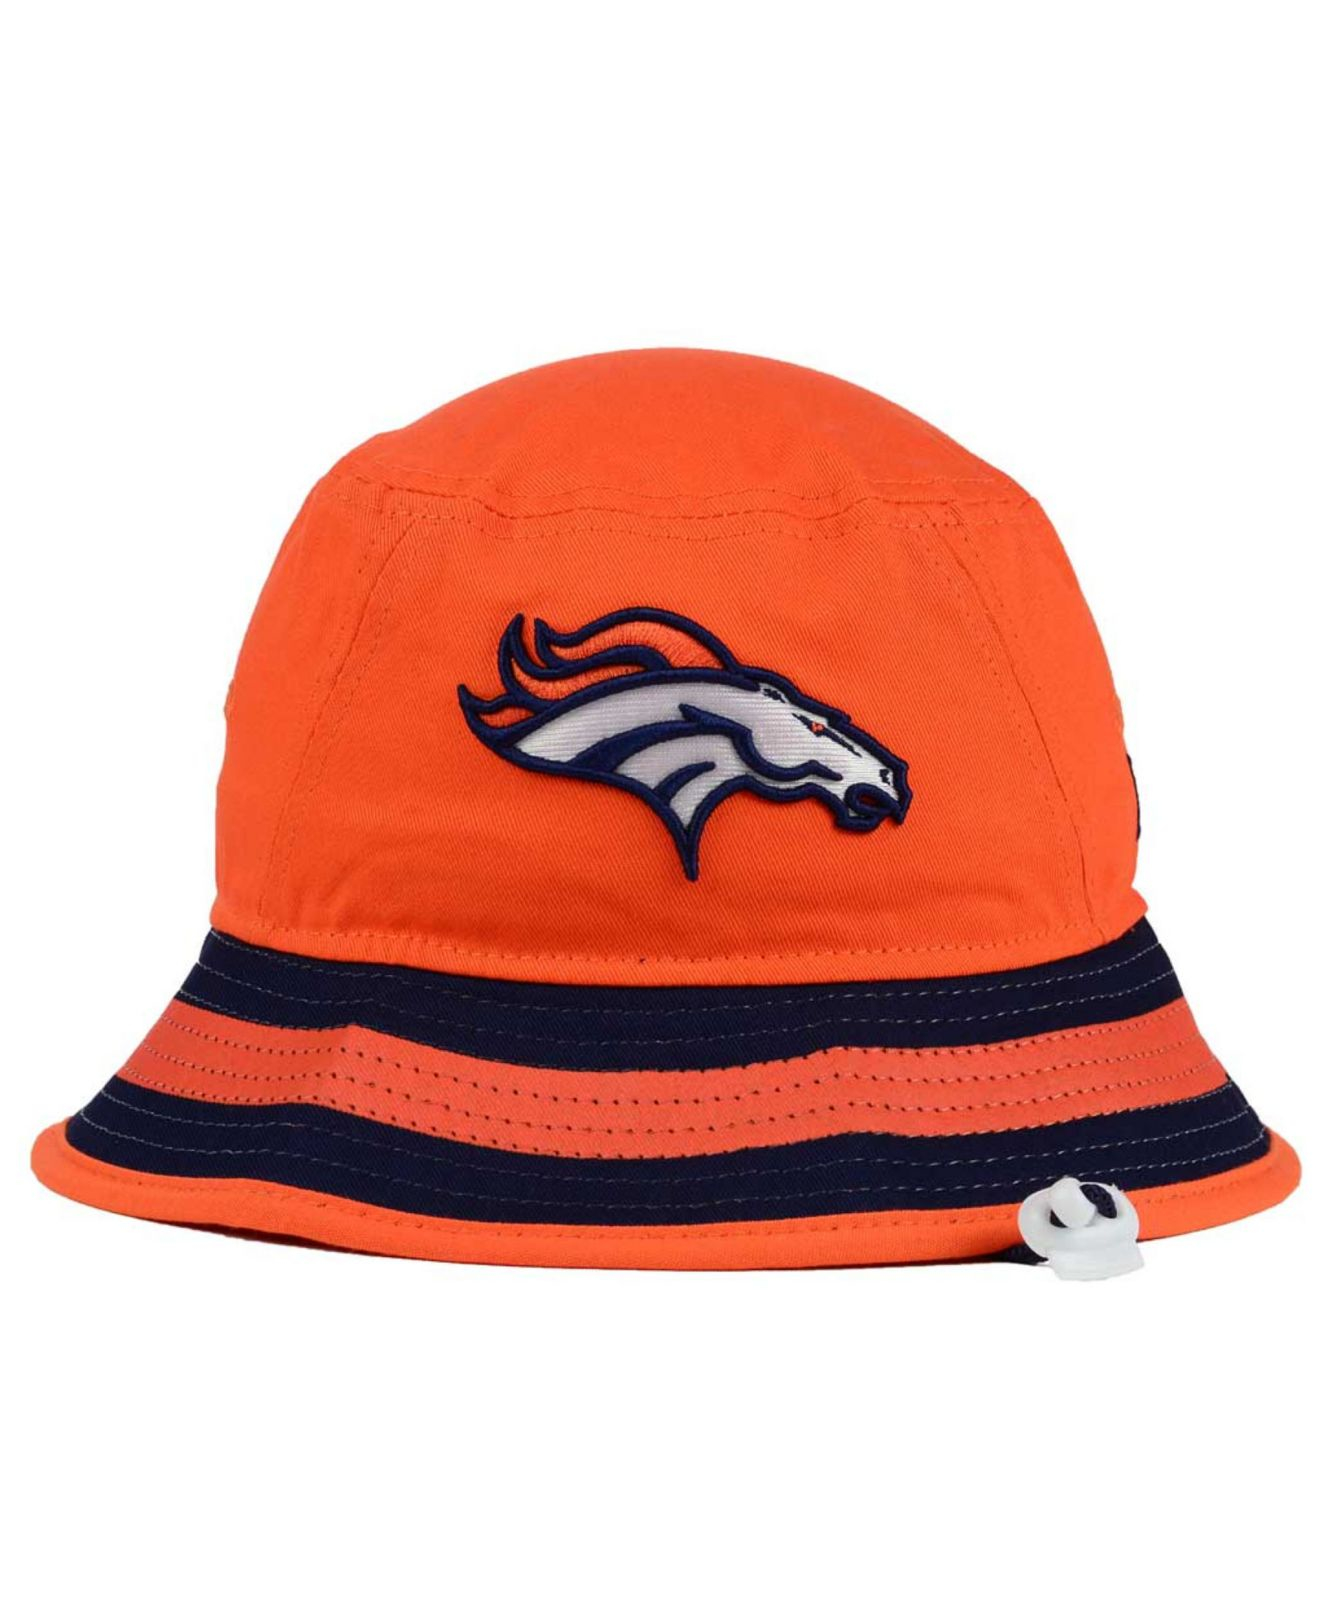 finest selection d0ef3 bf19e ... norway lyst ktz denver broncos team stripe bucket hat in orange for men  21a94 92e41